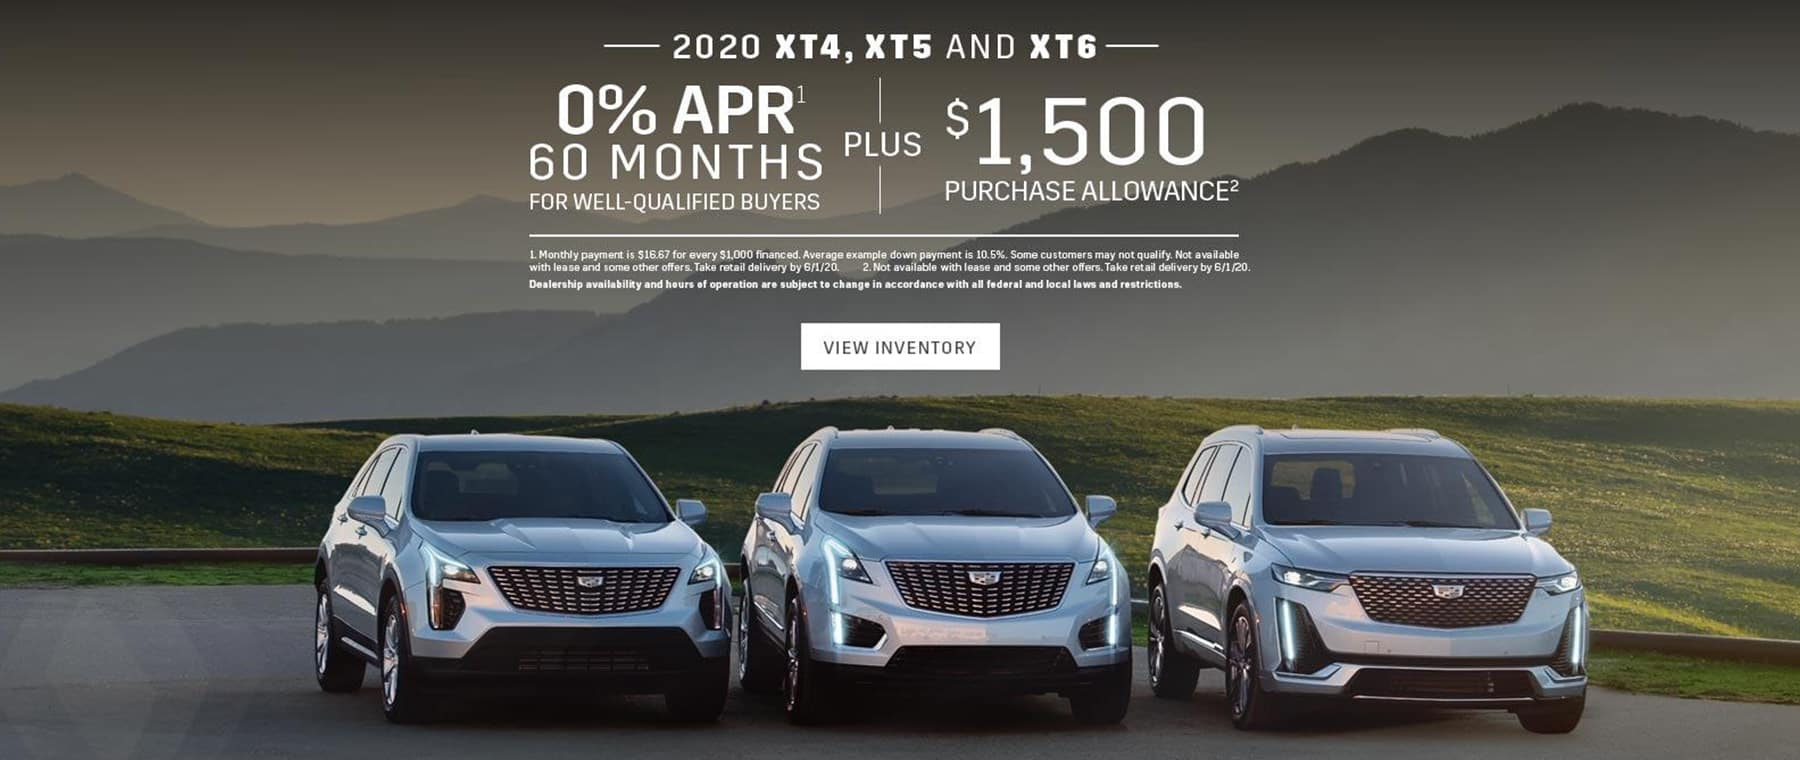 0% APR for 60 months on Select Cadillac Models